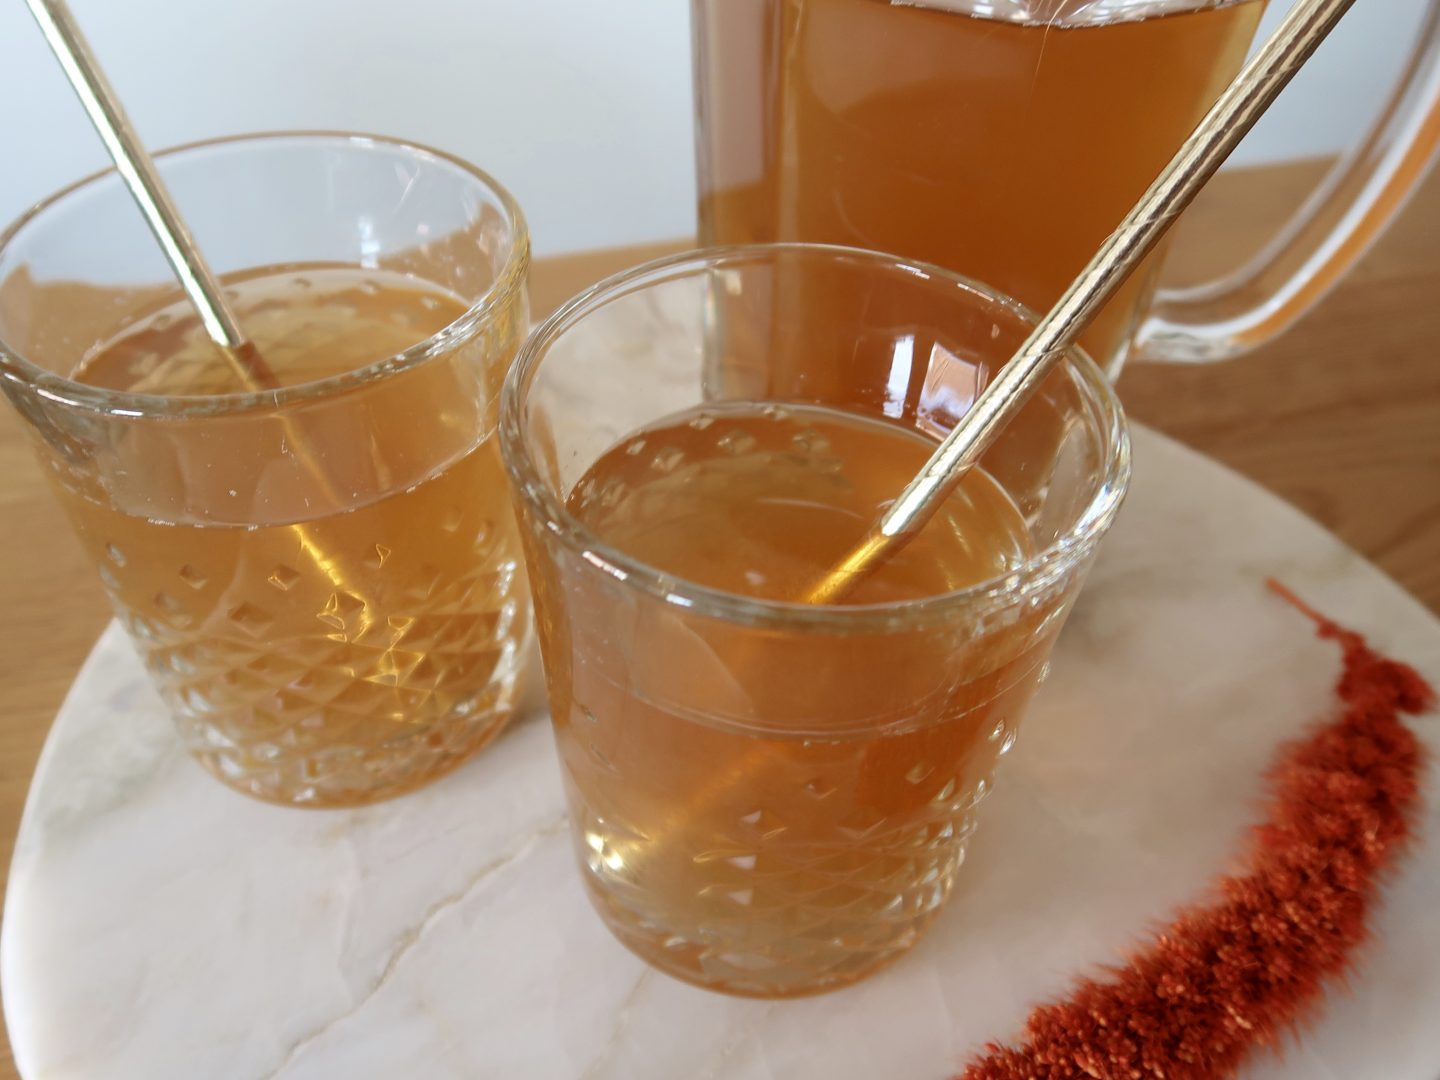 My refreshing homemade peach iced tea recipe - ByMeryl